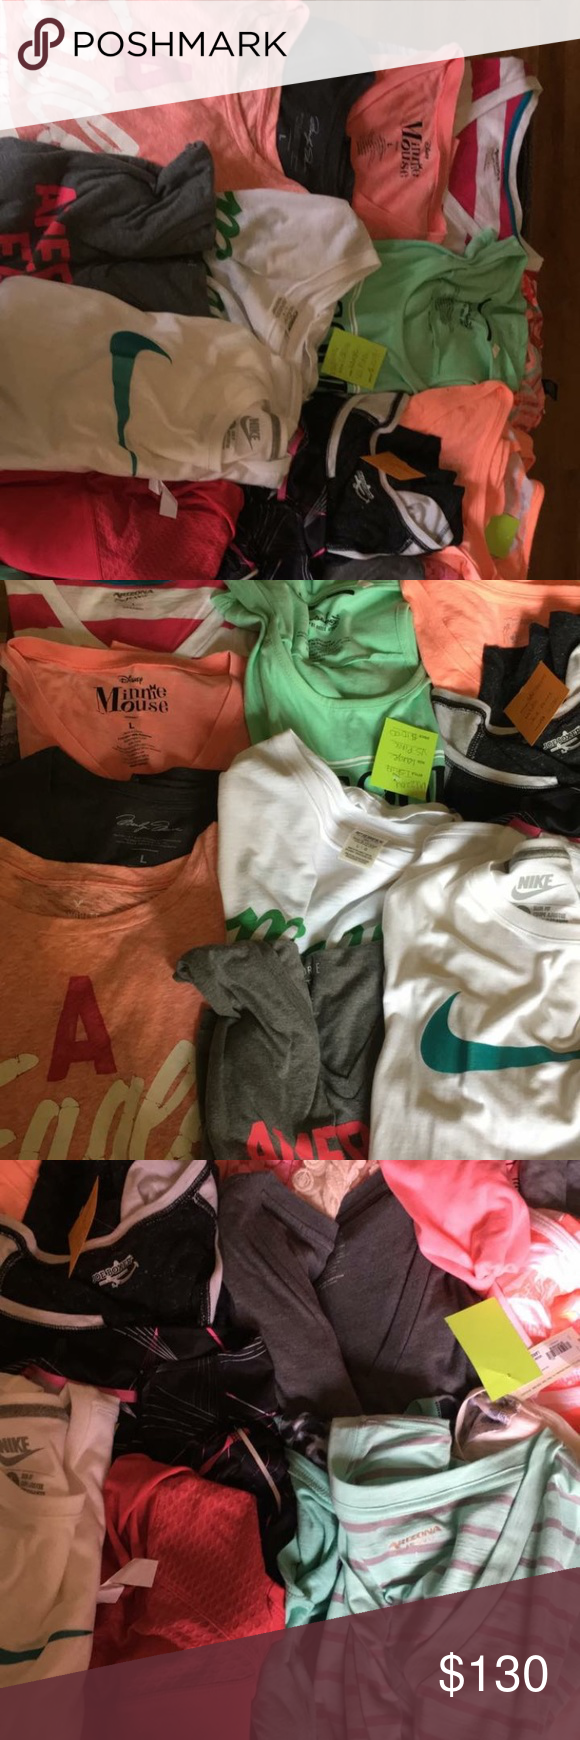 Large clothes Lot. All bundle together All size large. Some NWT. From hoodies, black pea coat long sleeve athletic tops and short sleeve. Brands Nike, American Eagle, Arizona Jean Company, pink, Victoria secret. All from a smoke free home. 30 pieces Clothing. All bundled. You receive all 30 pieces. All size large. American Eagle Outfitters Tops Sweatshirts & Hoodies